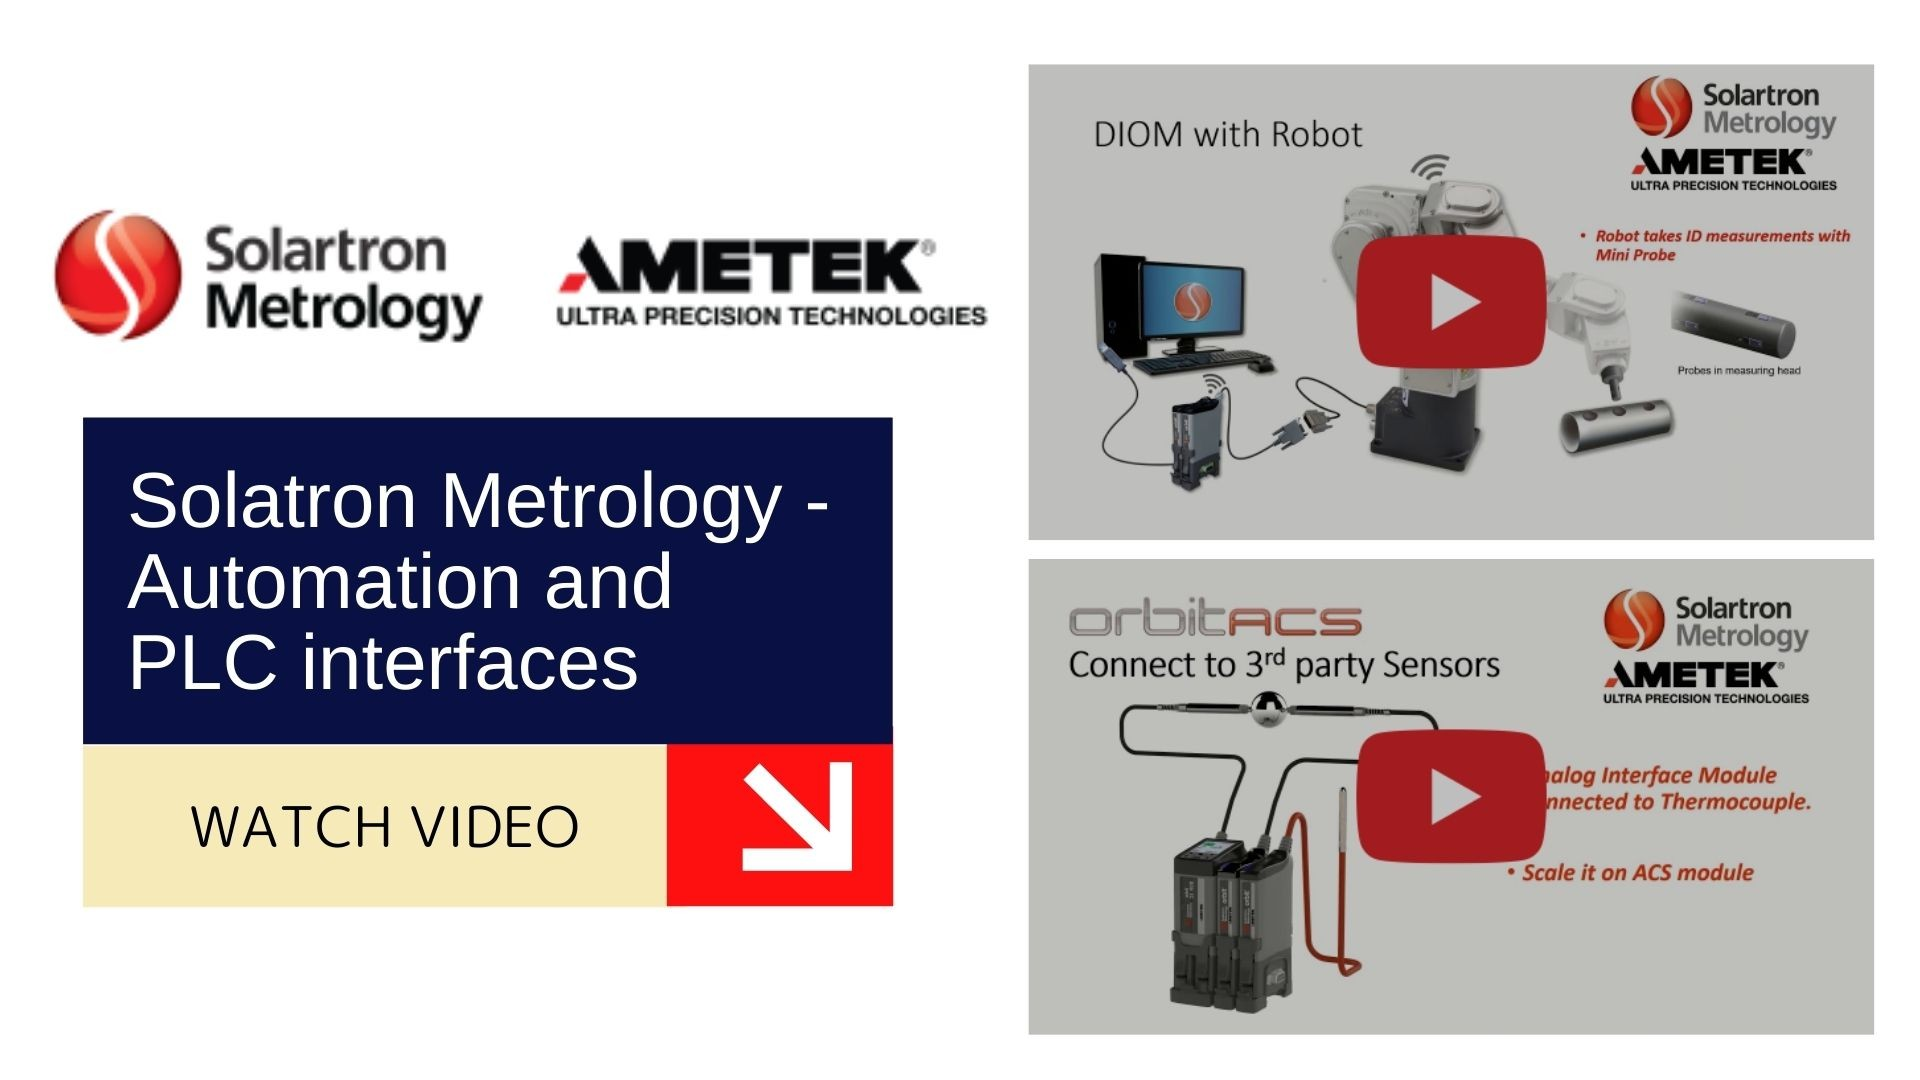 Solatron Metrology - Automation and PLC interfaces 1